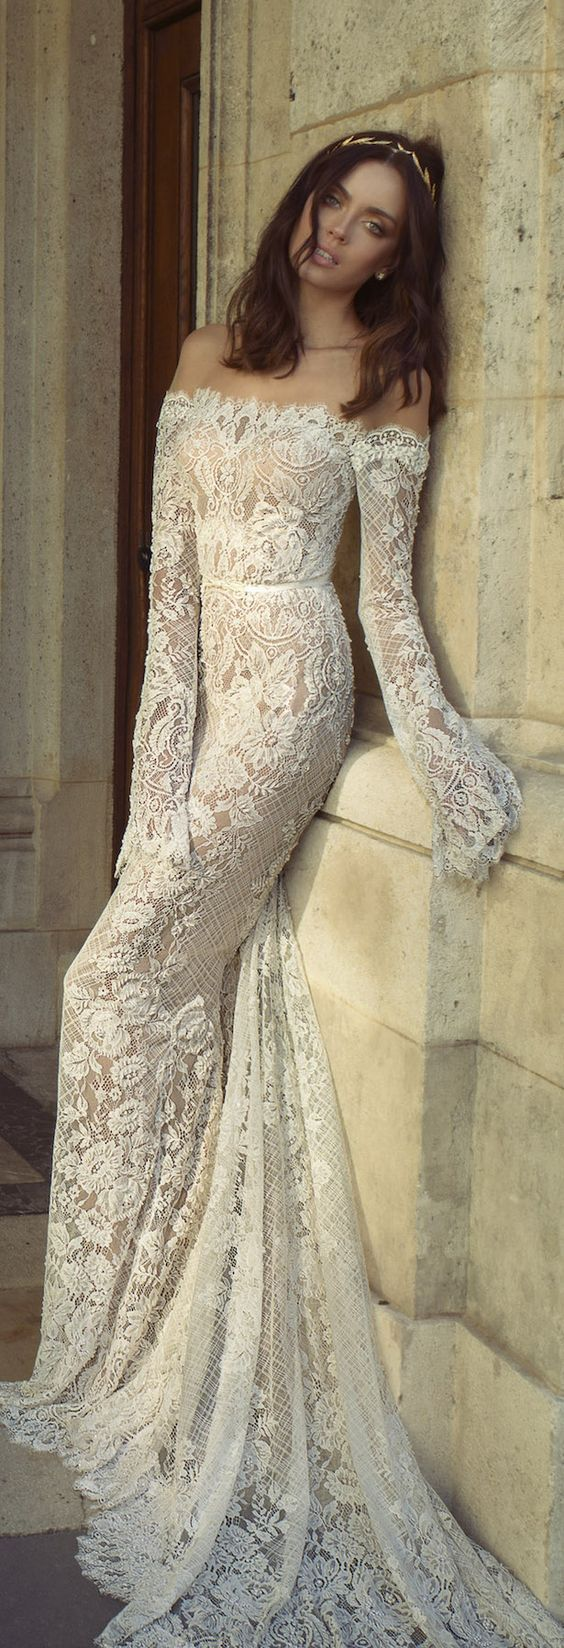 Ester Haute Couture Fall 2016 Vintage Lace Wedding Dress / http://www.deerpearlflowers.com/lace-wedding-dresses-and-gowns/2/